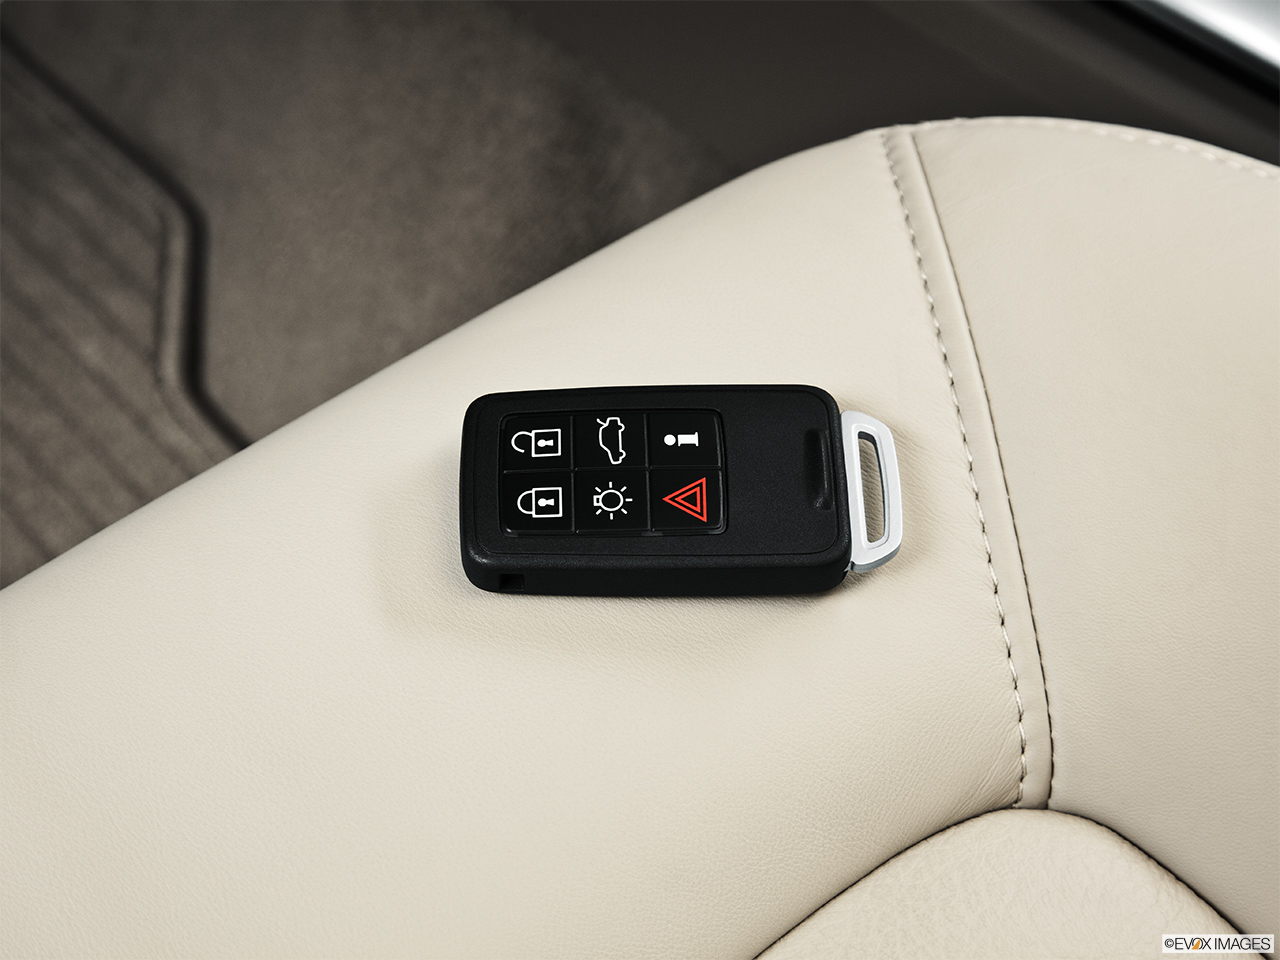 2014 Volvo XC70 3.2 AWD Premier Plus Key fob on driver's seat.